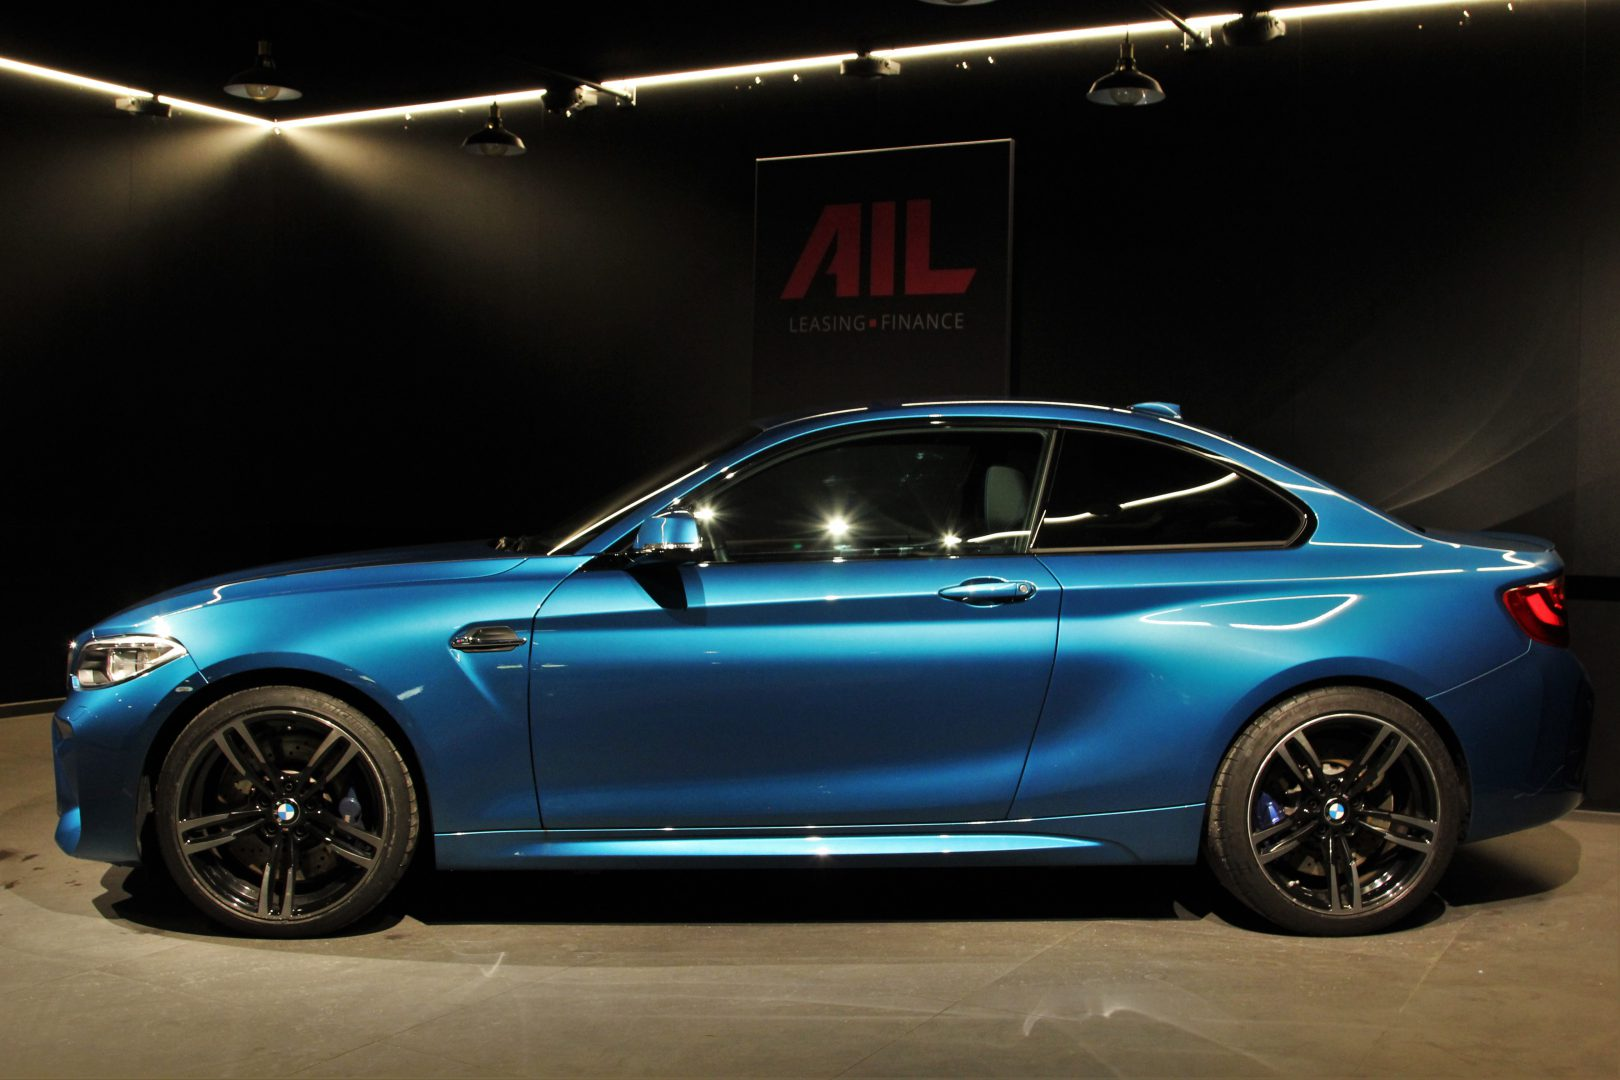 AIL BMW M2 LONG BEACH BLUE DKG  3